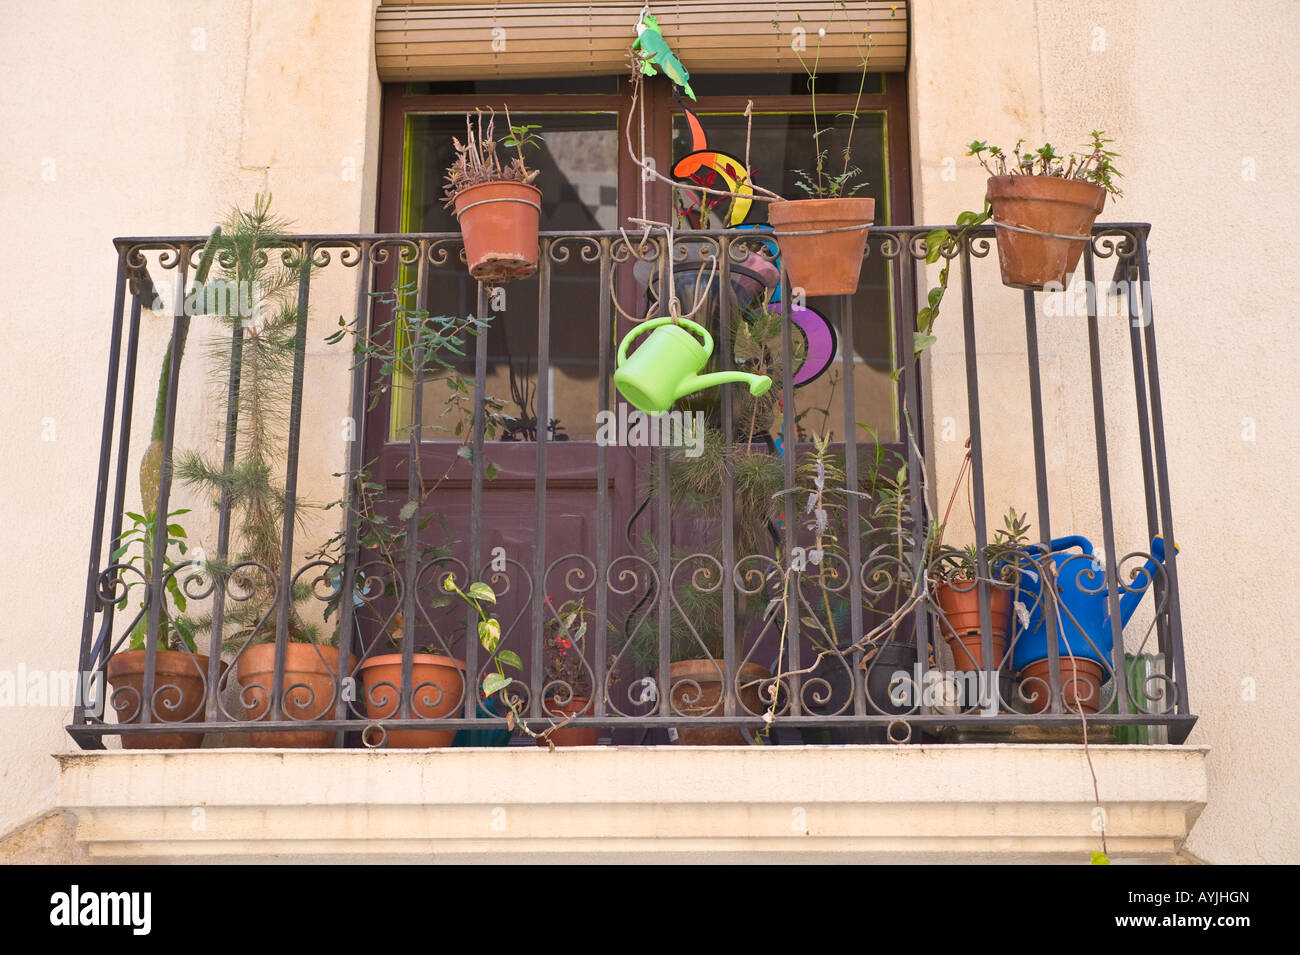 Balcony with pot plants and watering can old city Tarragona Spain Europe - Stock Image